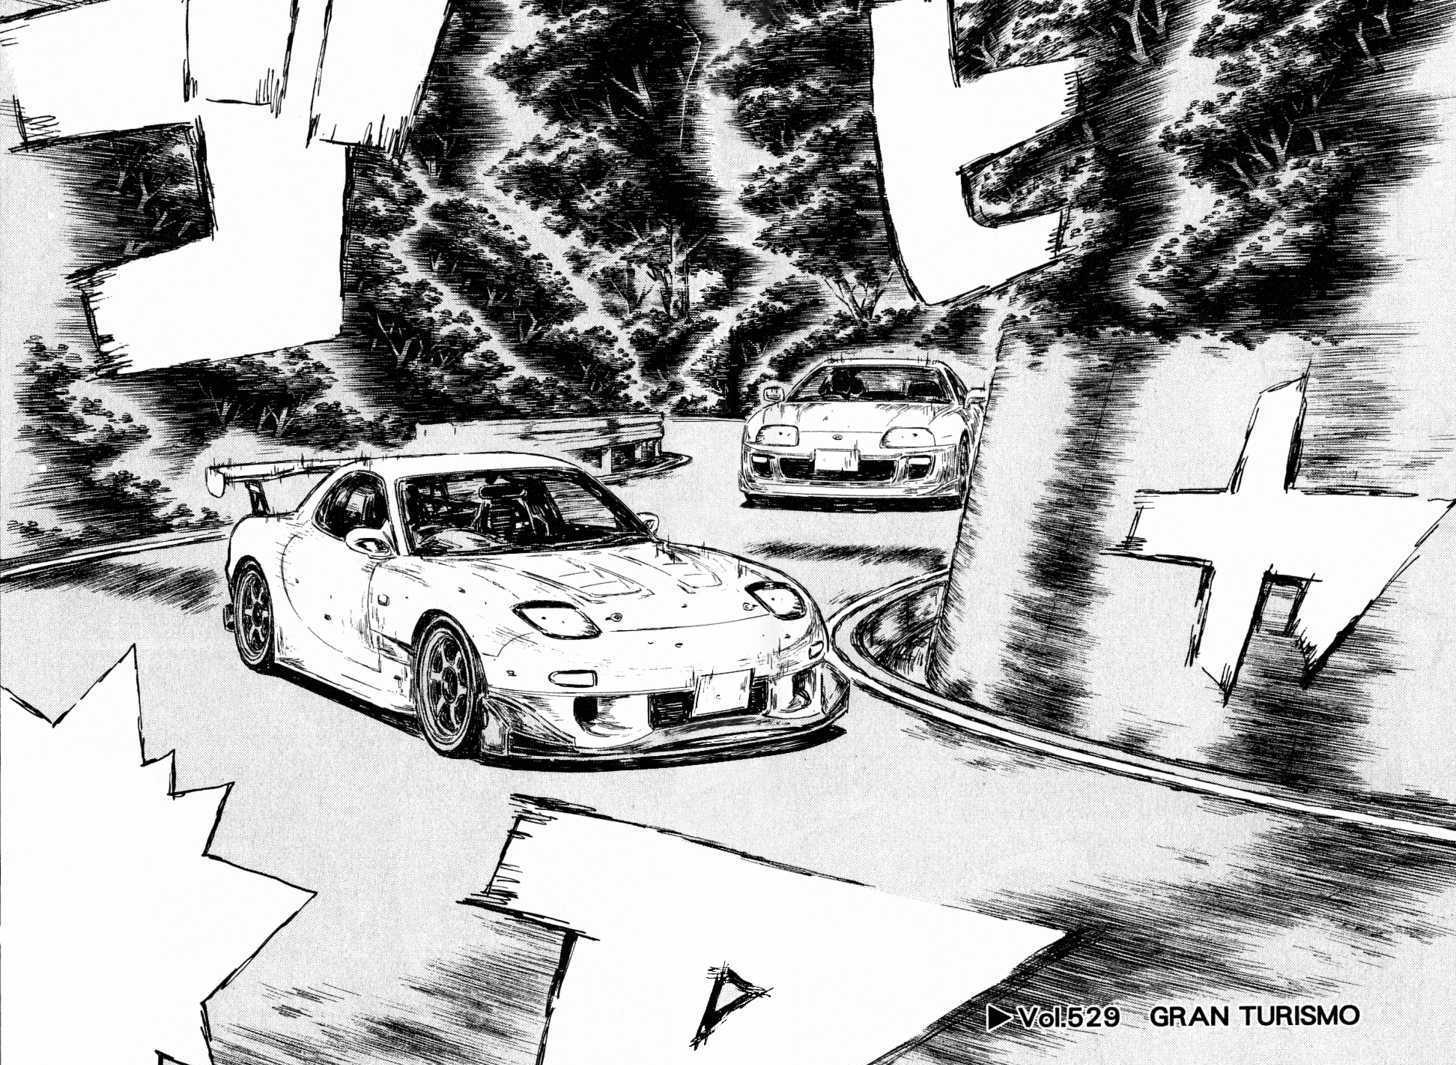 https://im.nineanime.com/comics/pic9/61/2493/61205/InitialD5290253.jpg Page 1